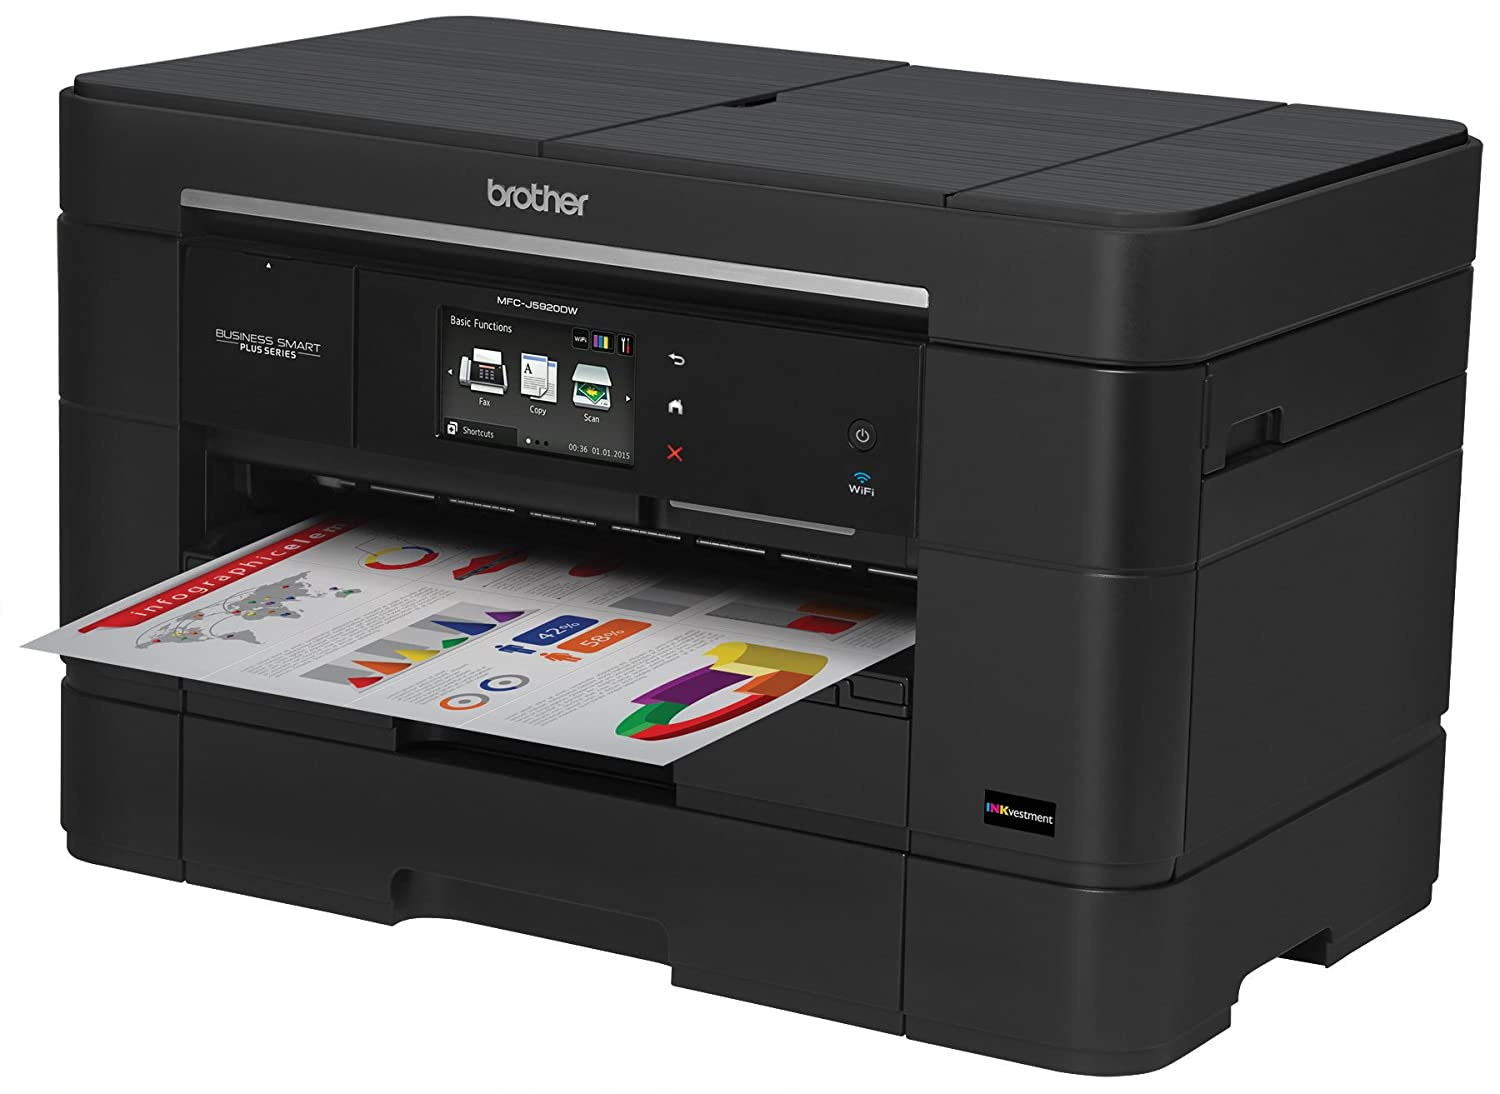 BROTHER MFC-J5920DW PRINTER DESCARGAR CONTROLADOR